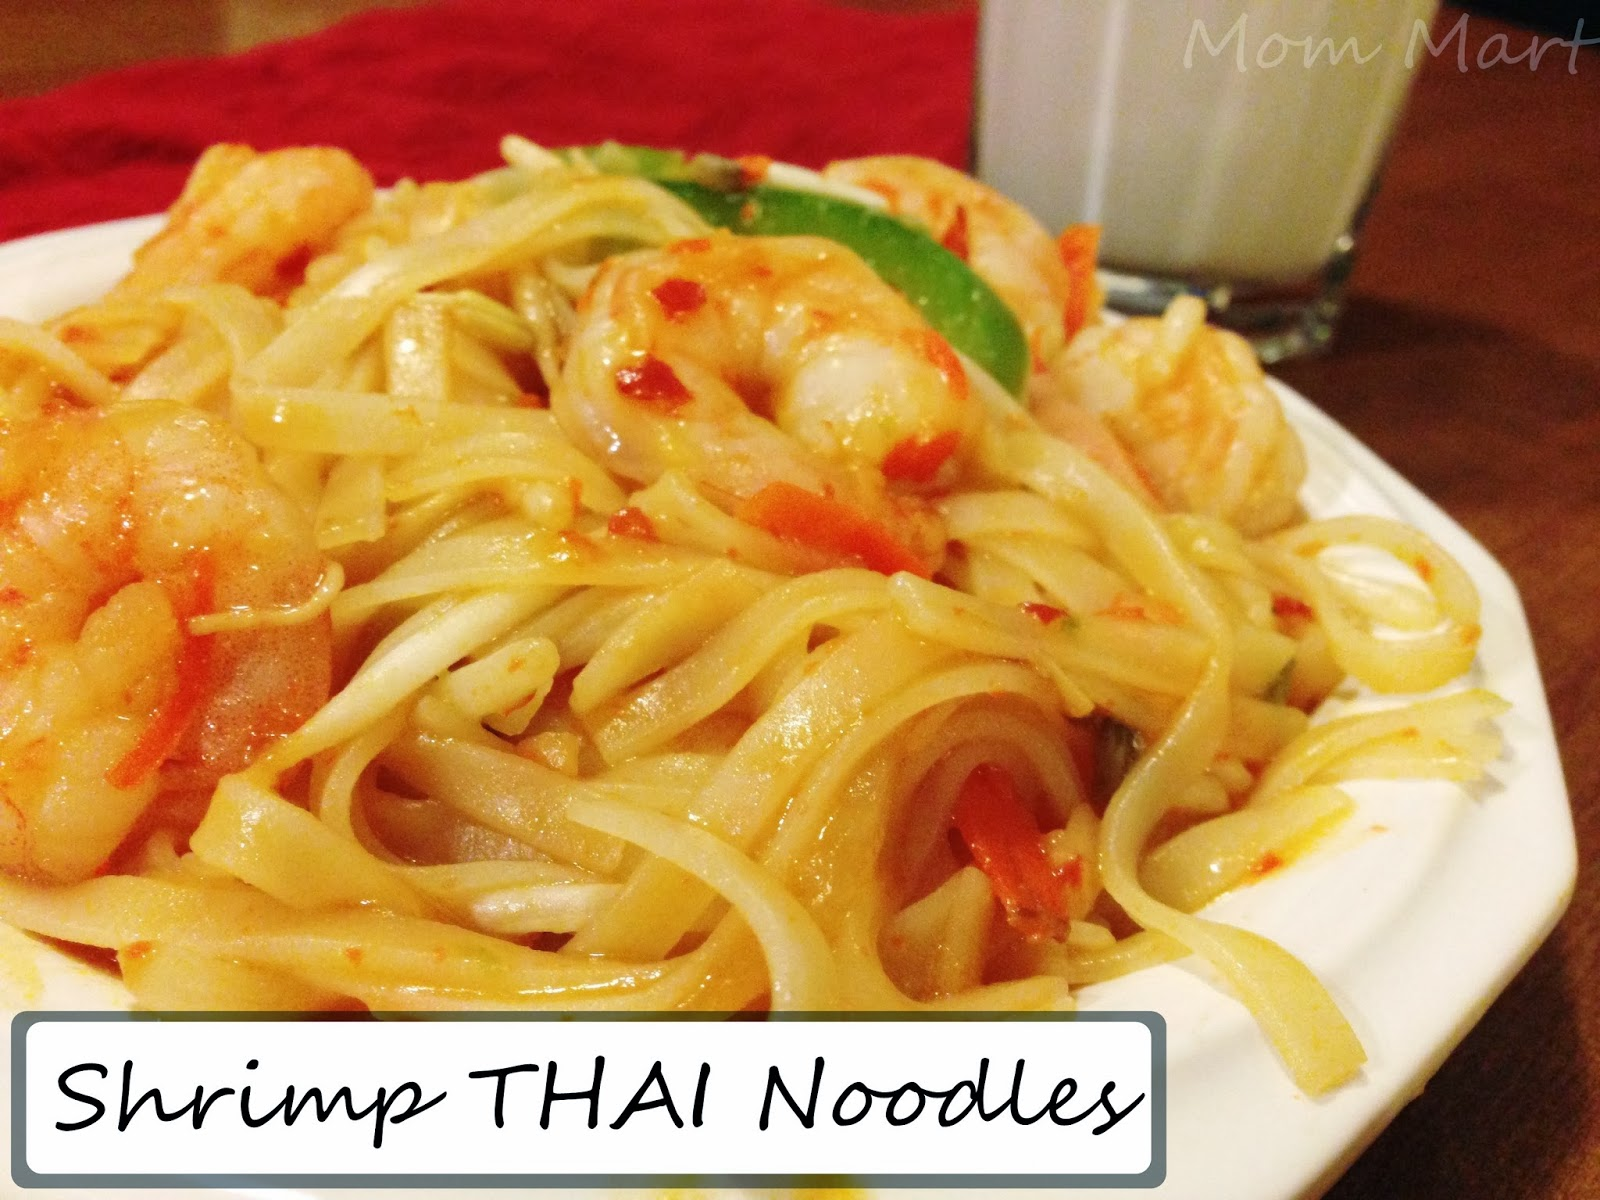 Mom mart keeping dinner light with thai shrimp noodles recipe shrimp thai noodle recipe quick and easy dinner seafood recipe healthy forumfinder Image collections